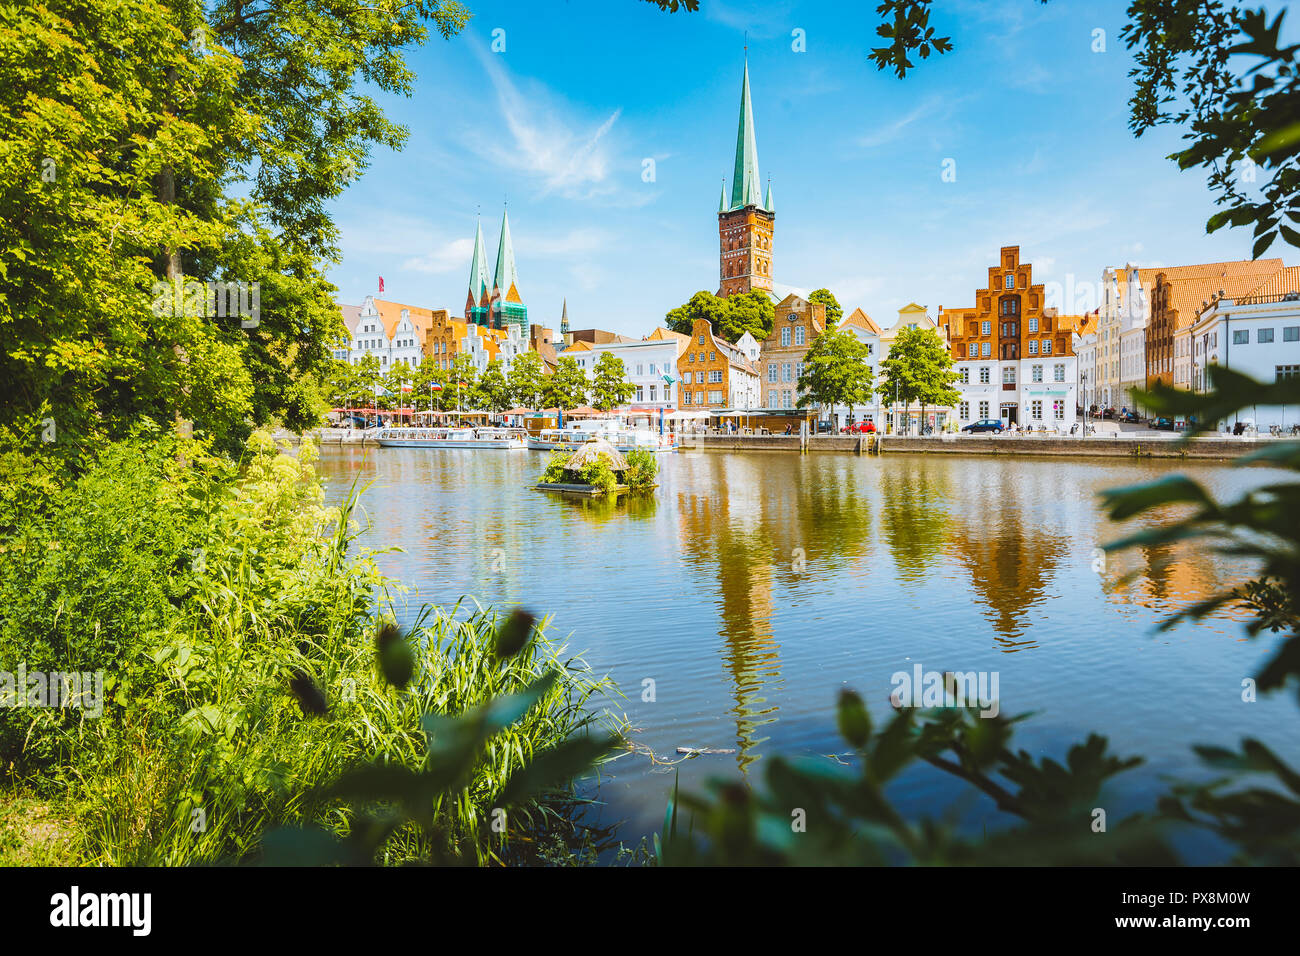 Classic panorama view of the historic city of Luebeck with famous Trave river in summer, Schleswig-Holstein, Germany - Stock Image